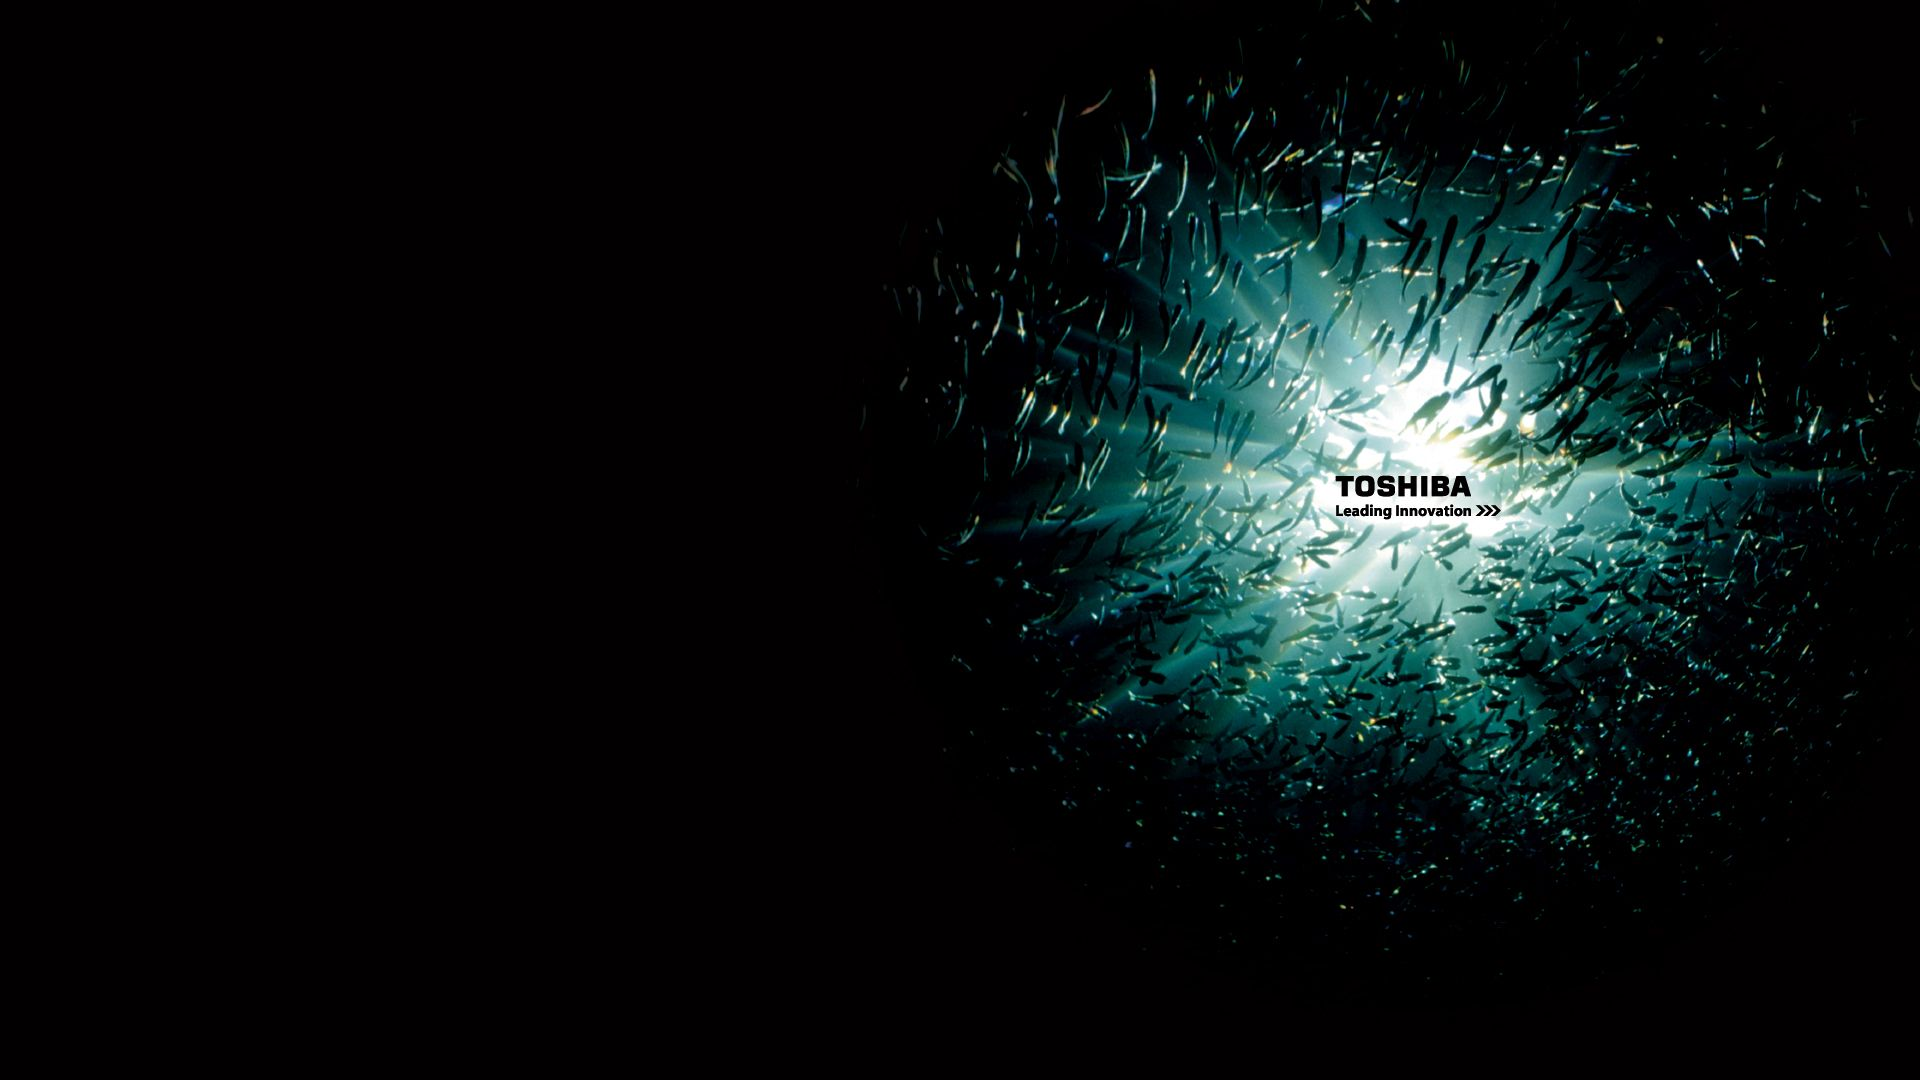 Toshiba Backgrounds Pictures 1920x1080